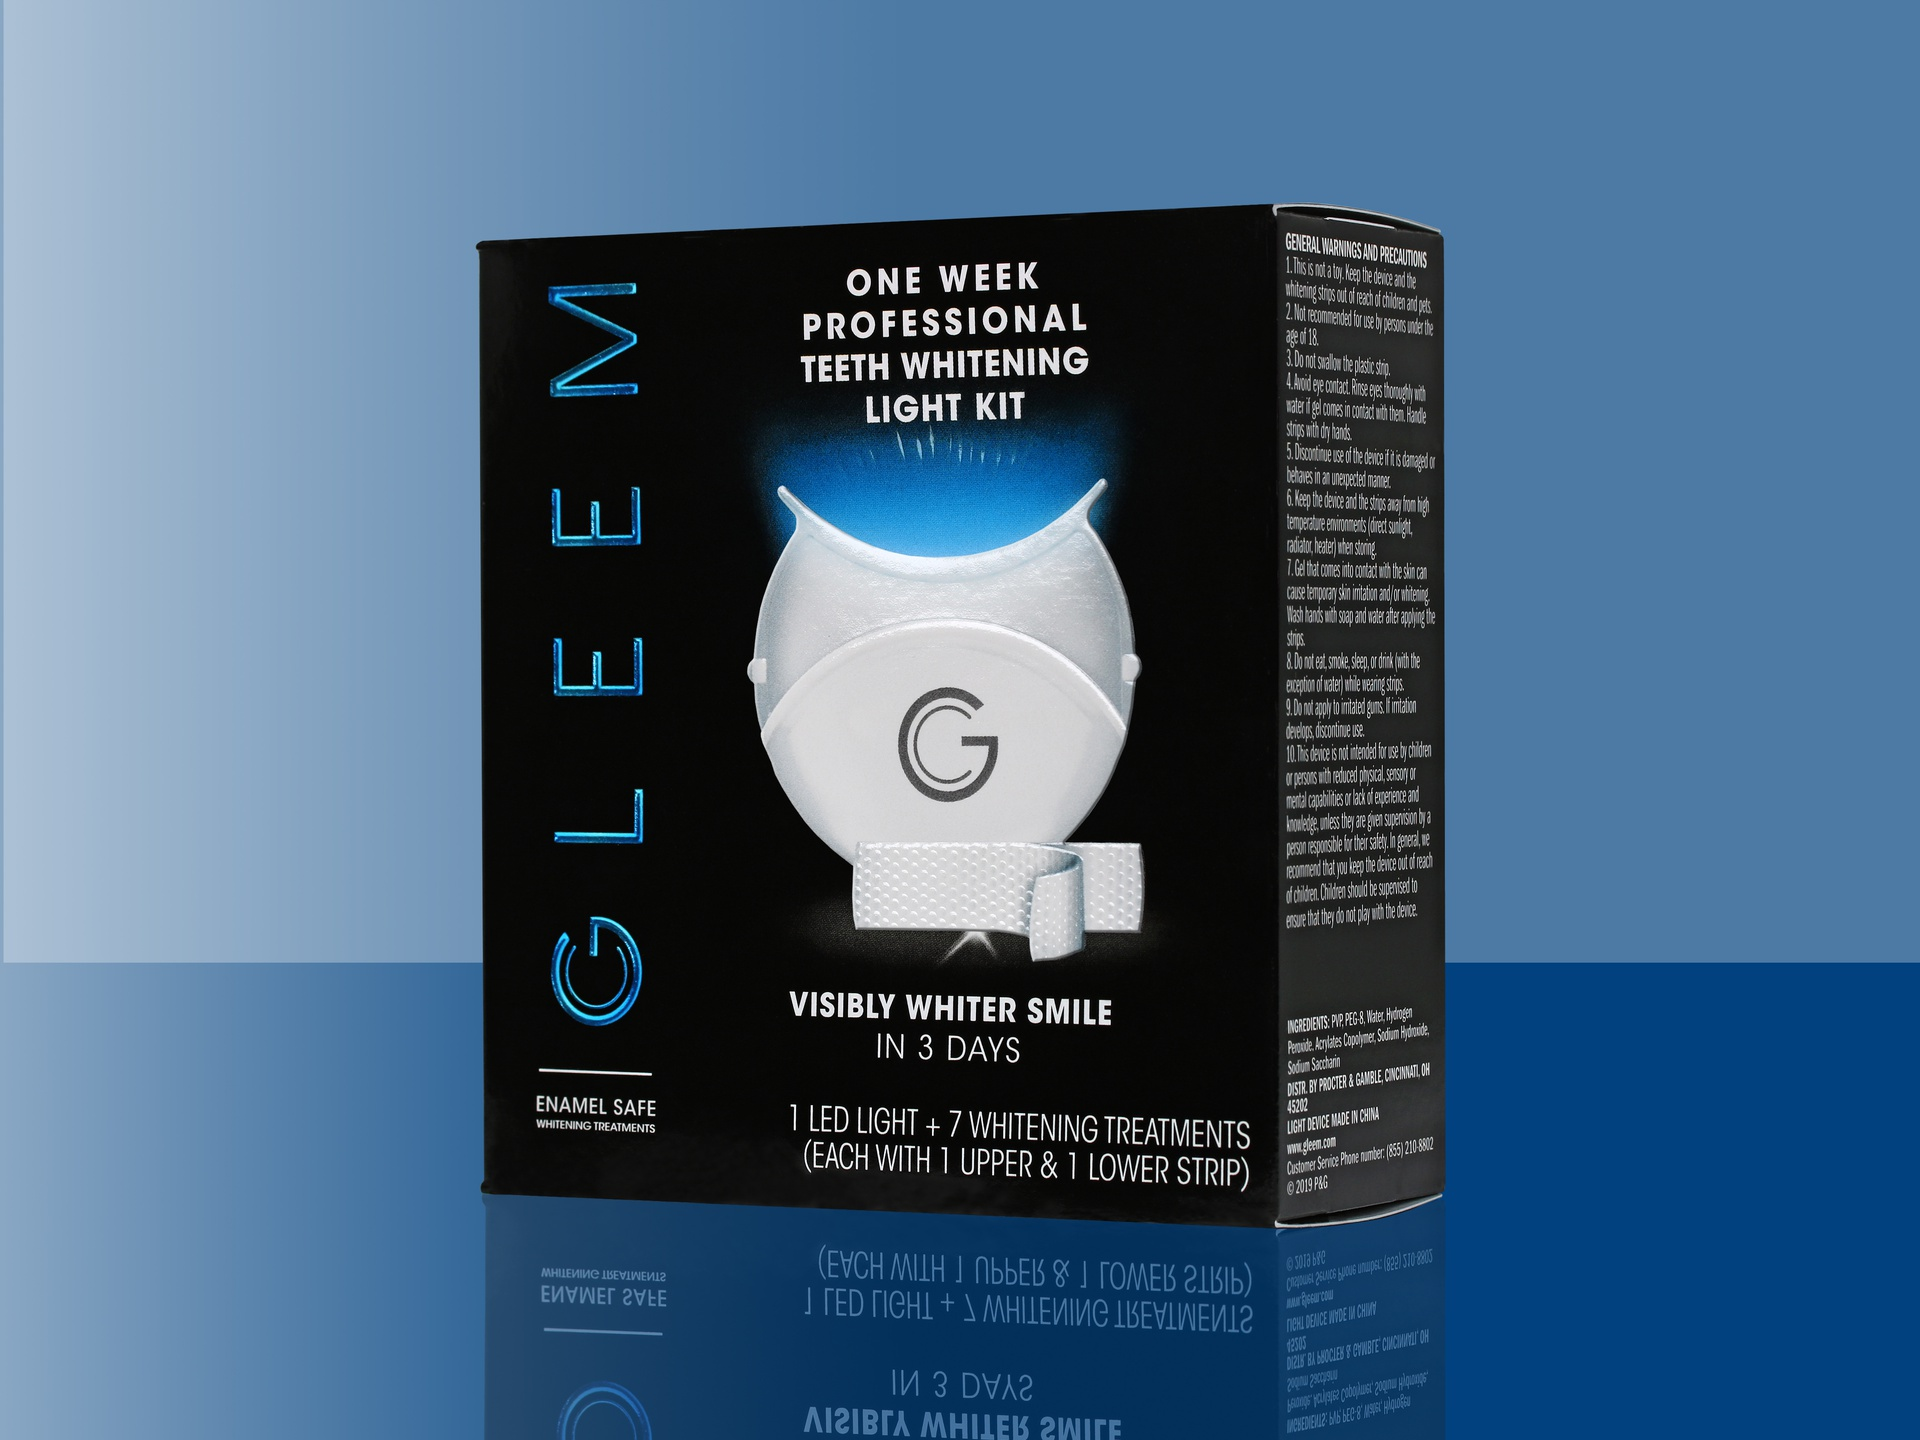 GLEEM Professional Teeth Whitening Light Kit packaging